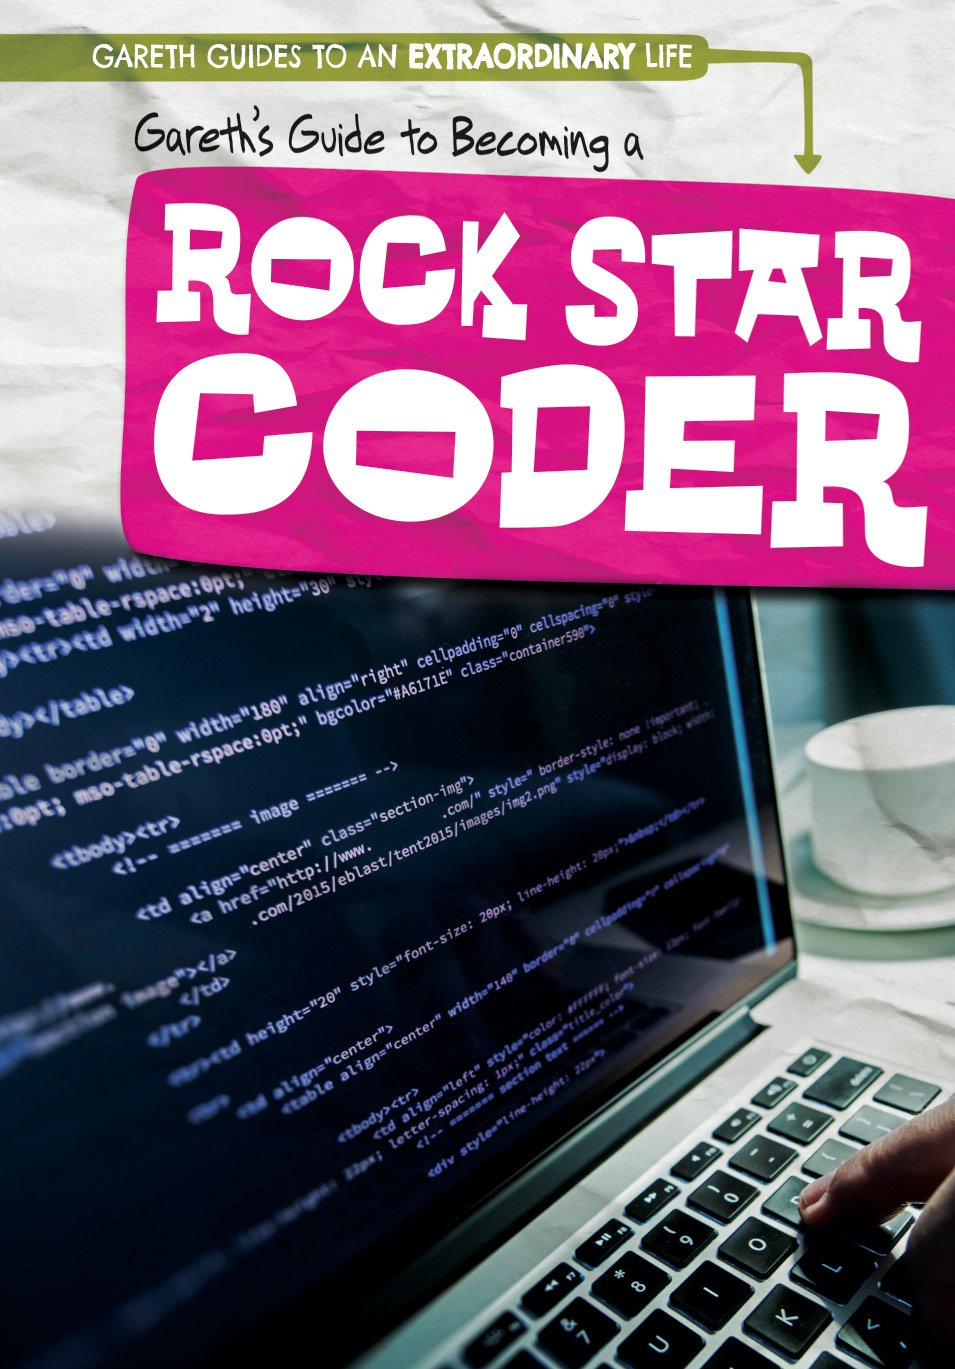 Gareth's Guide to Becoming a Rock Star Coder (Gareth Guides to an Extraordinary Life)